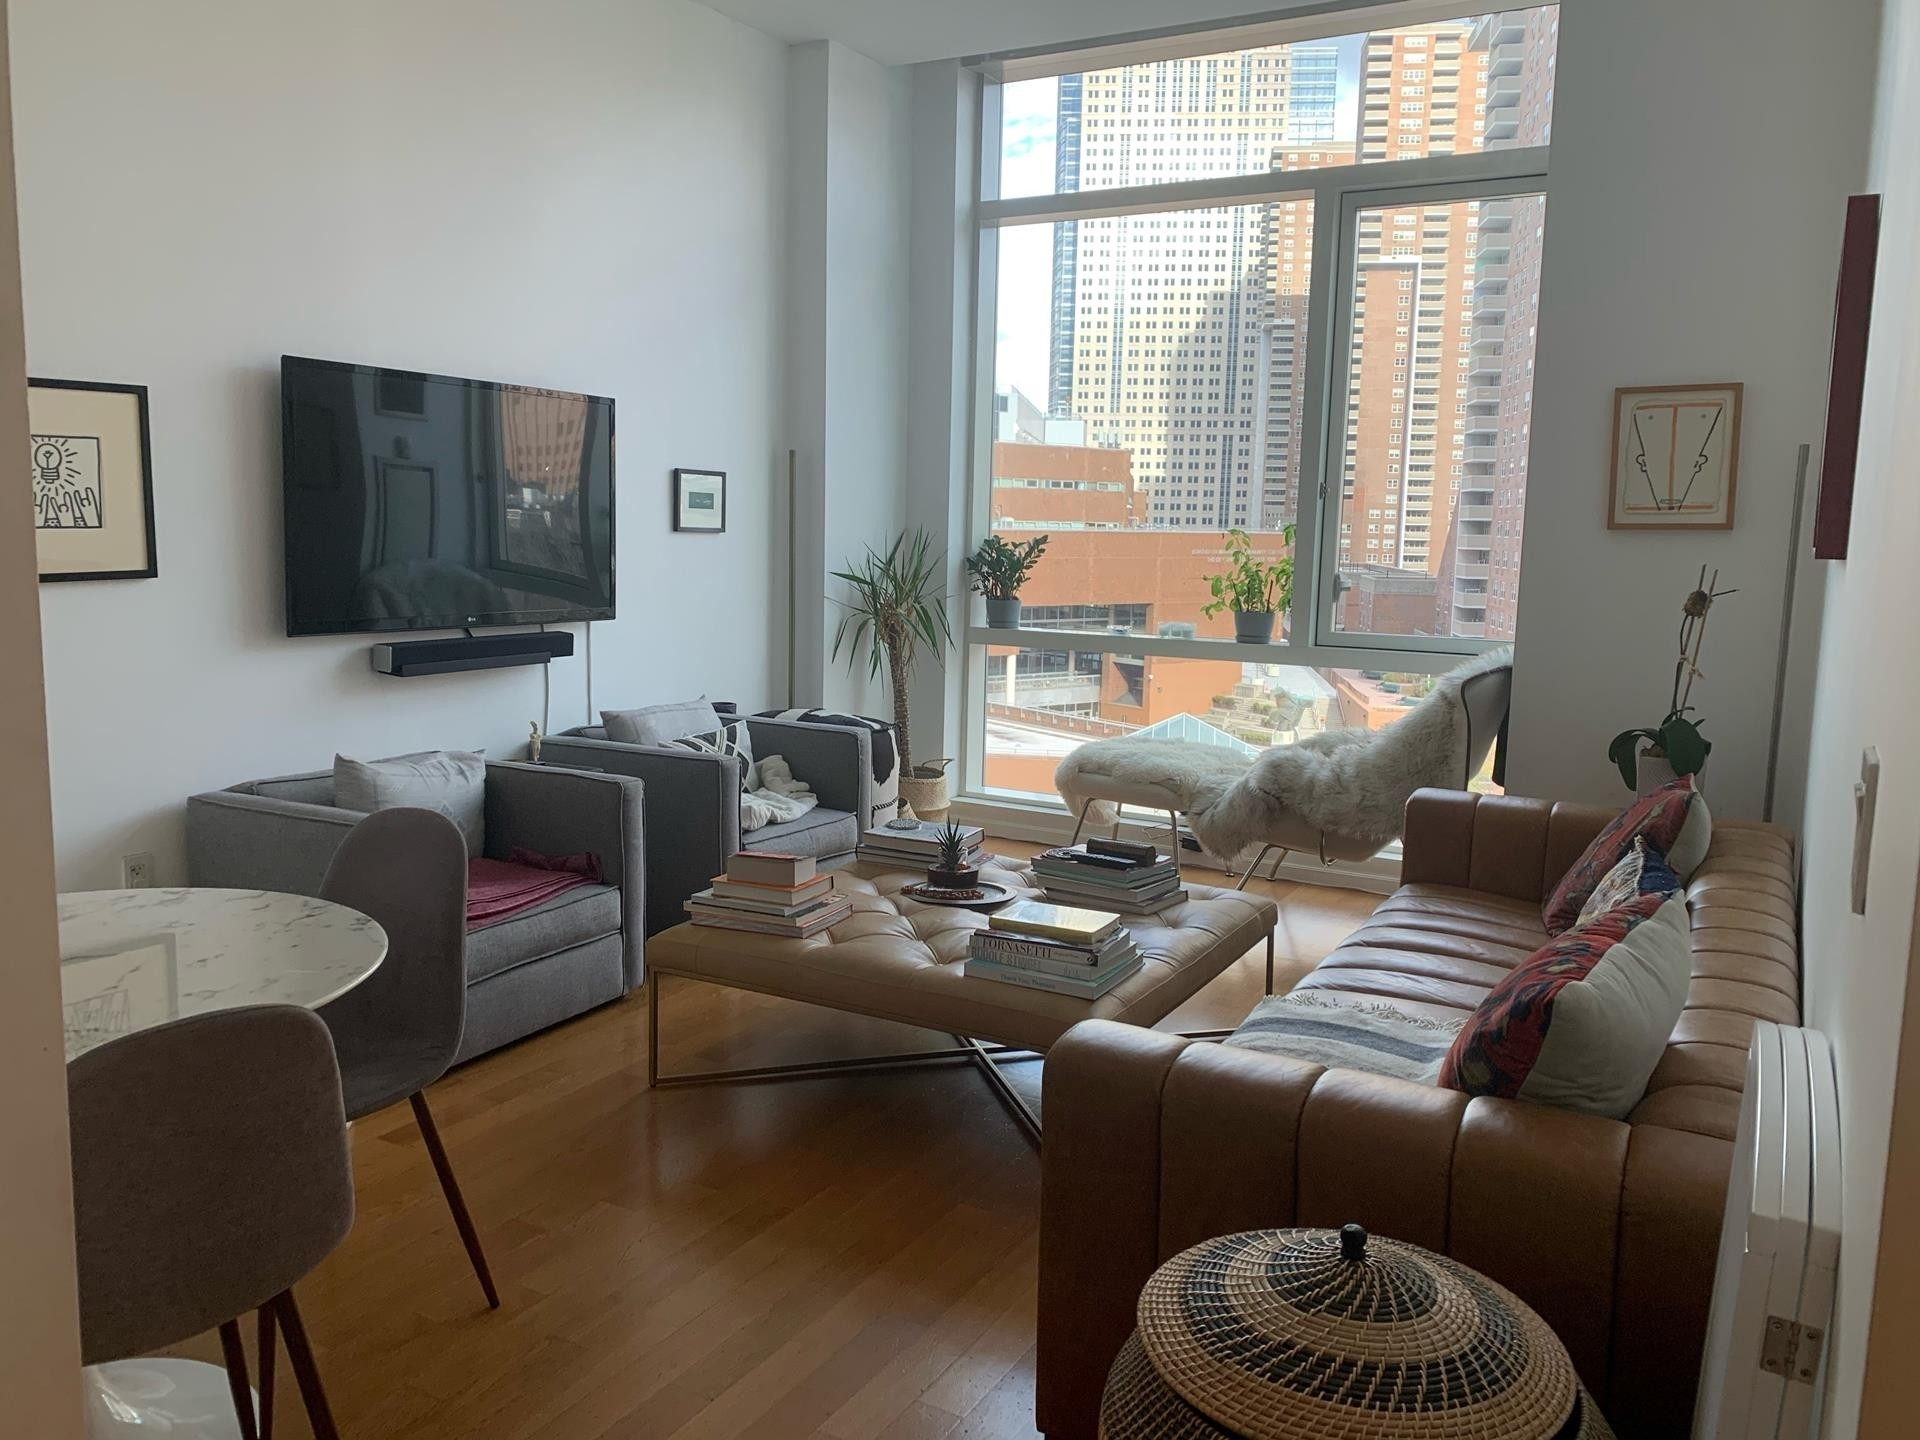 Property at 200 Chambers St, 7N TriBeCa, New York, NY 10007